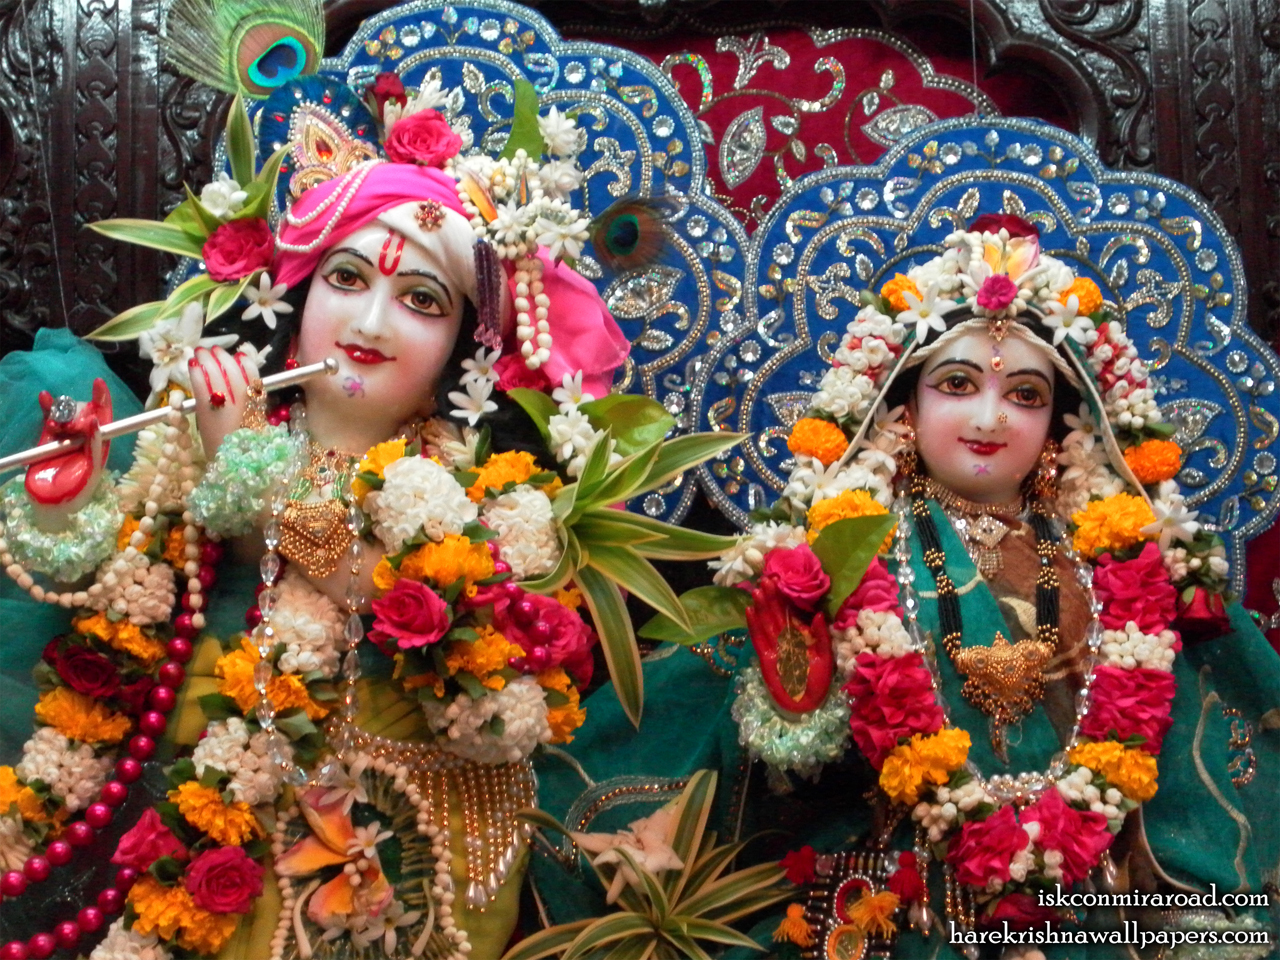 Sri Sri Radha Giridhari Close up Wallpaper (017) Size 1280x960 Download